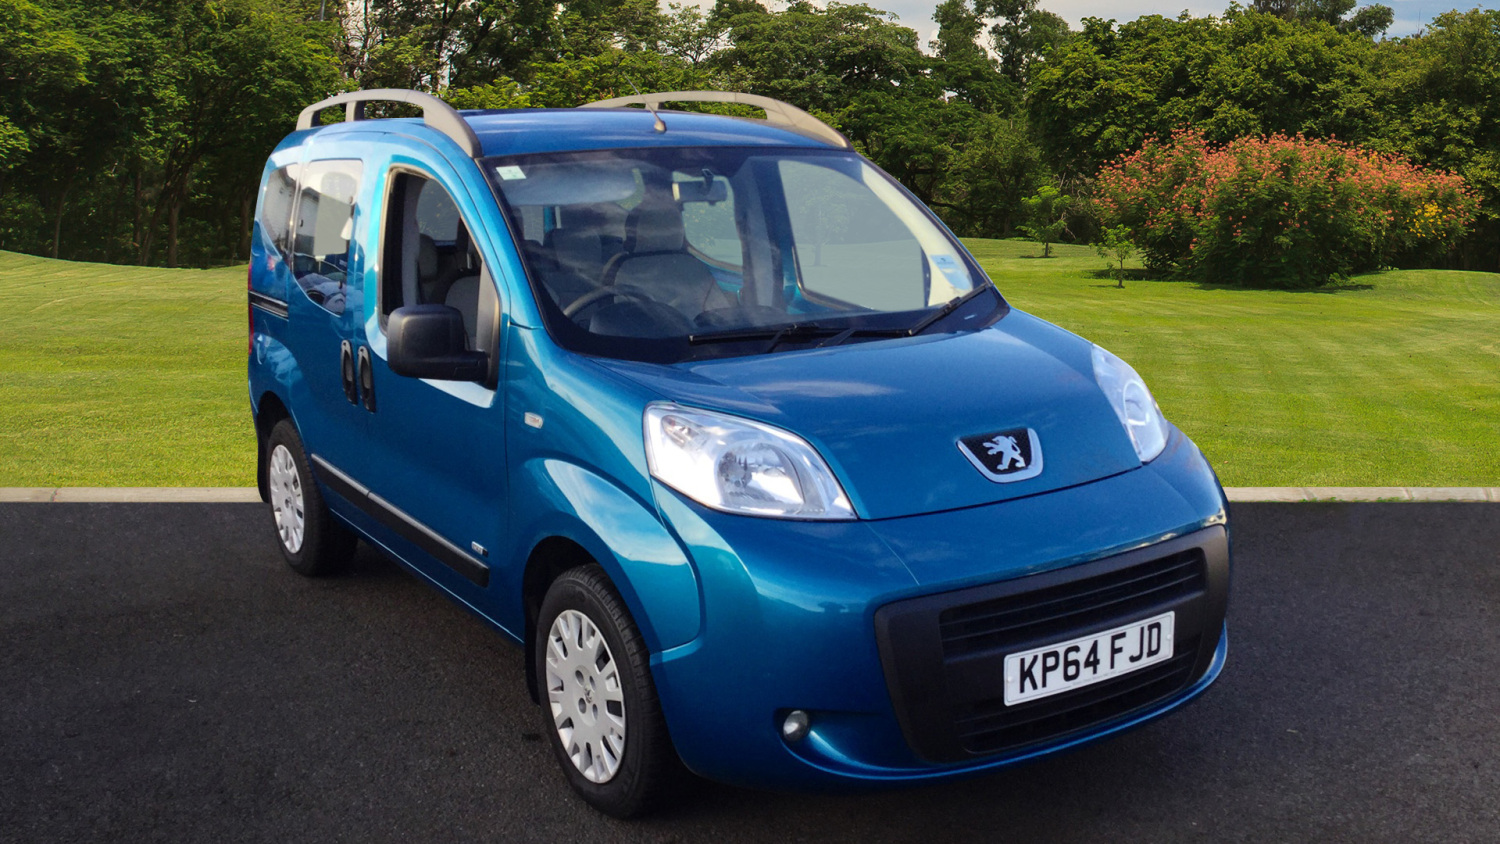 used peugeot bipper tepee 1 3 hdi 75 style 5dr non start stop diesel estate for sale in. Black Bedroom Furniture Sets. Home Design Ideas